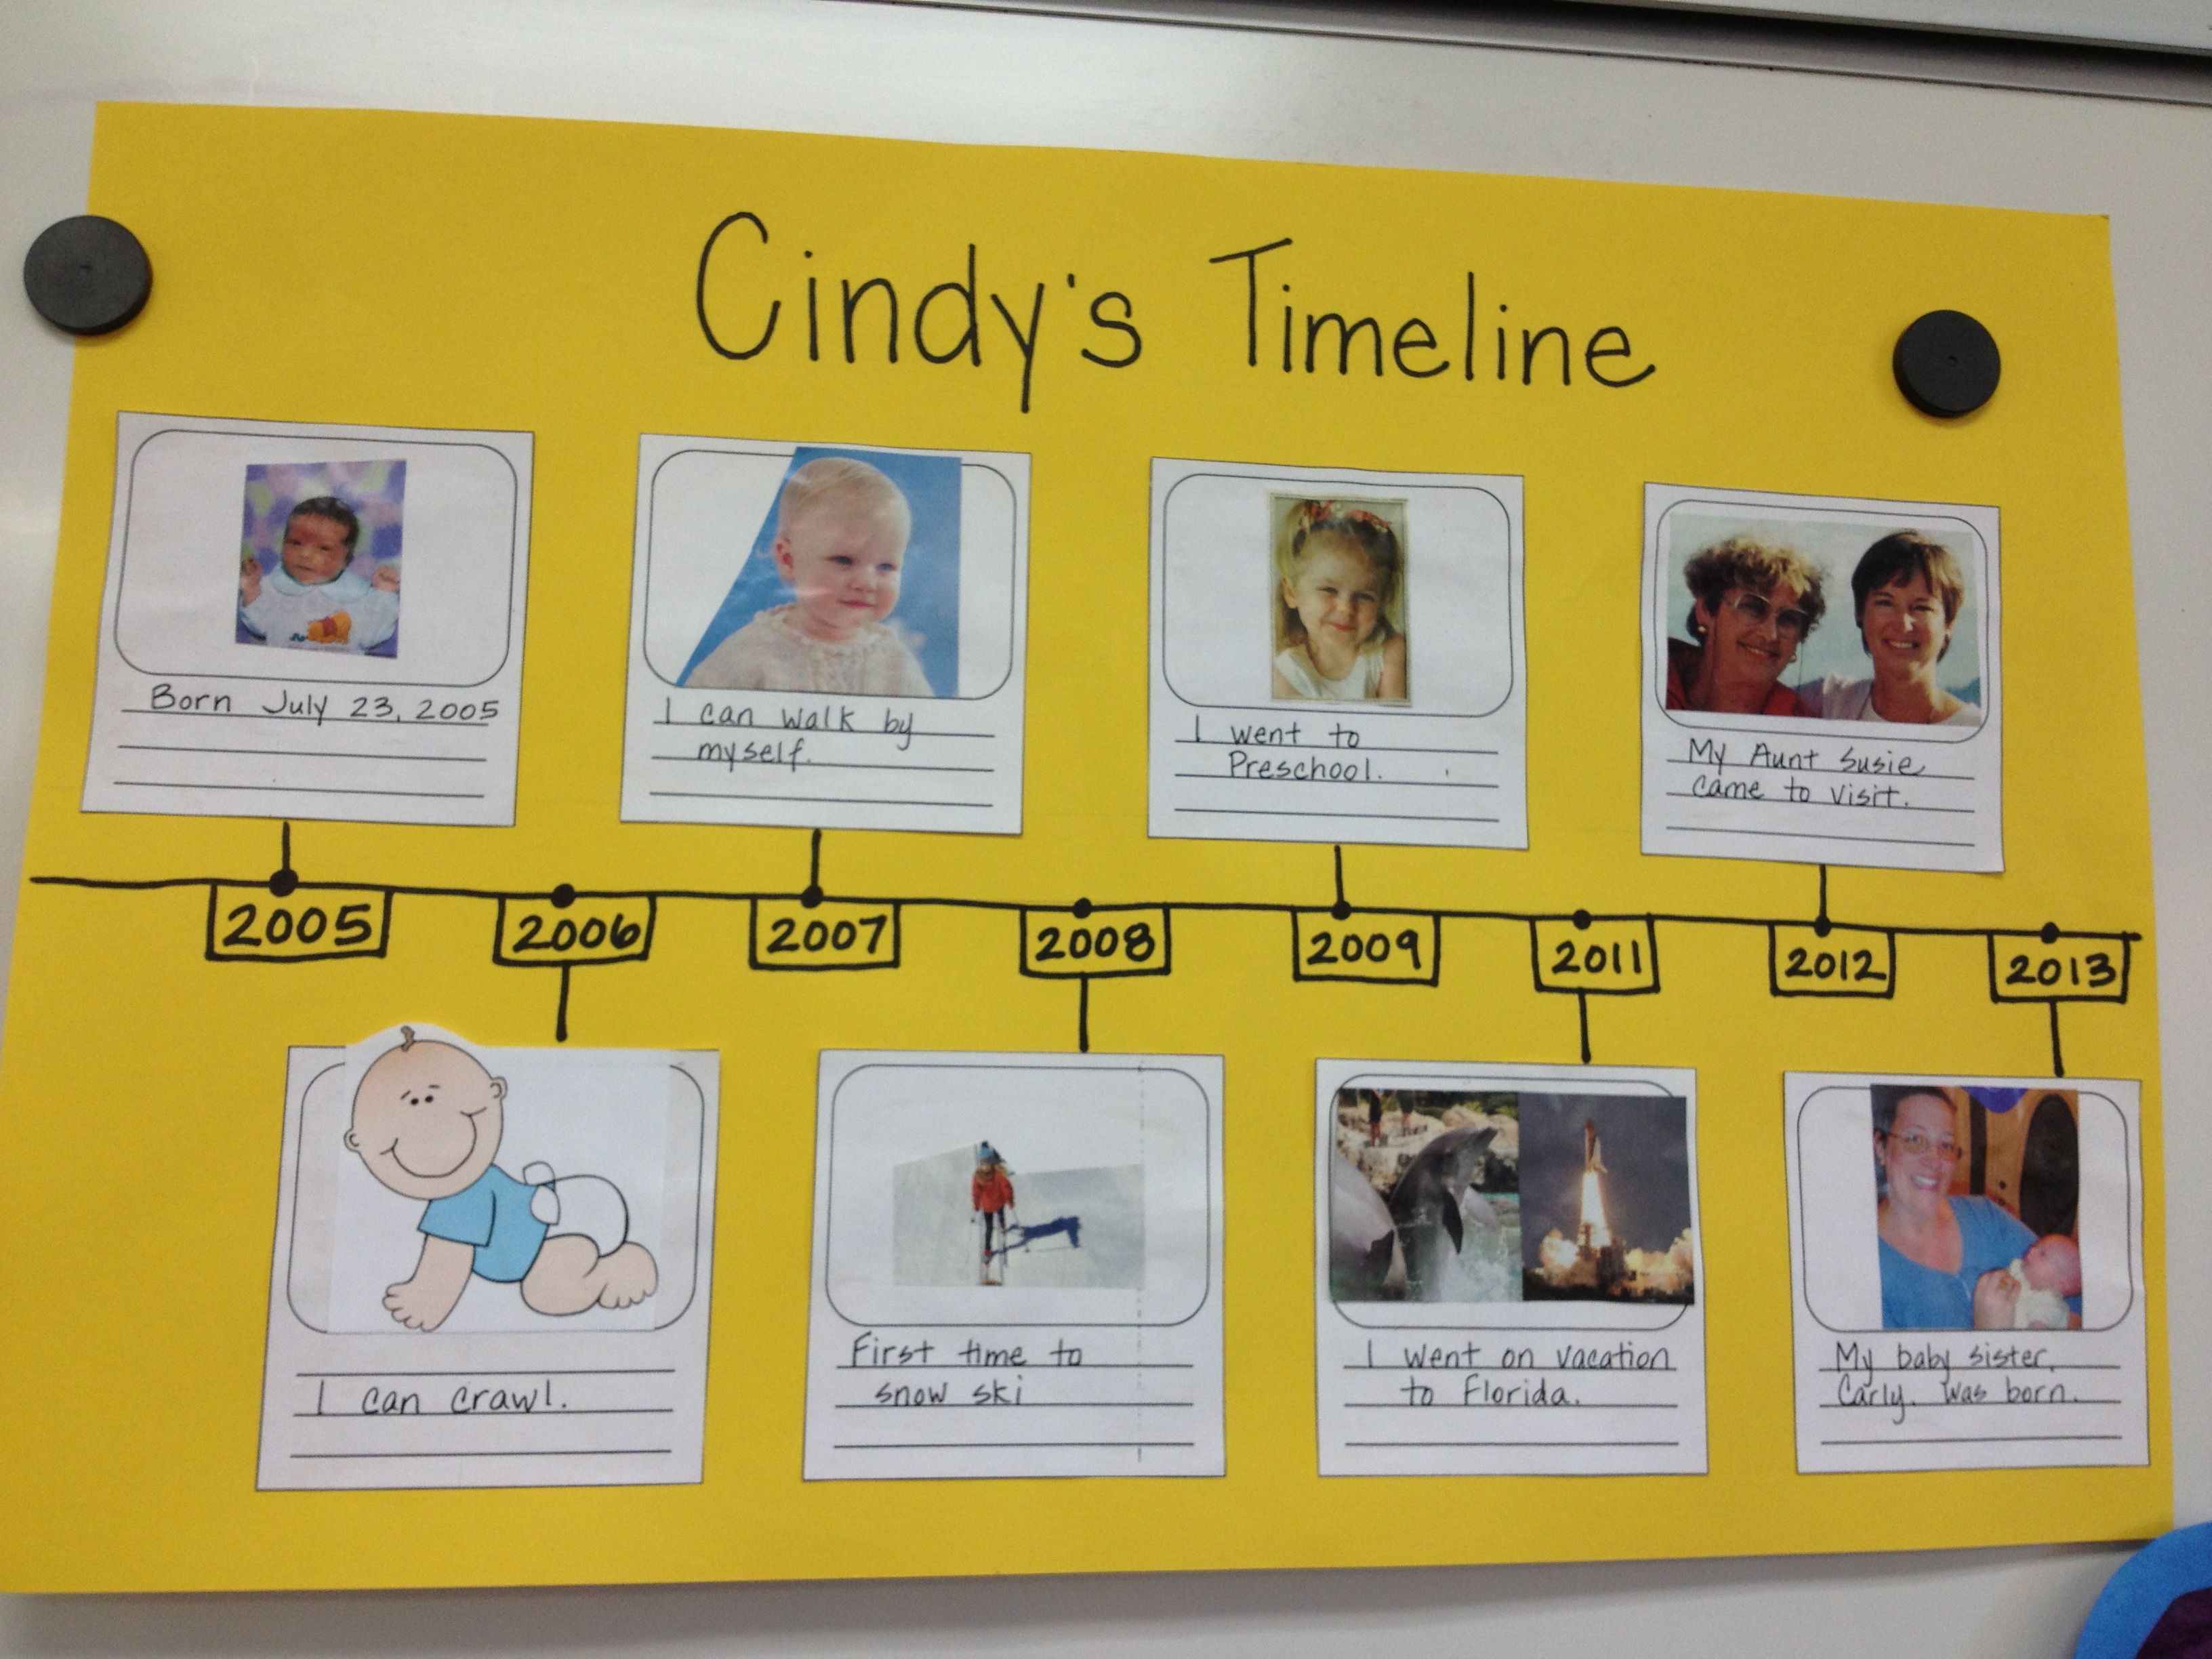 Pictures of family tree timelines for kids yahoo image search pictures of family tree timelines for kids yahoo image search results jeuxipadfo Gallery